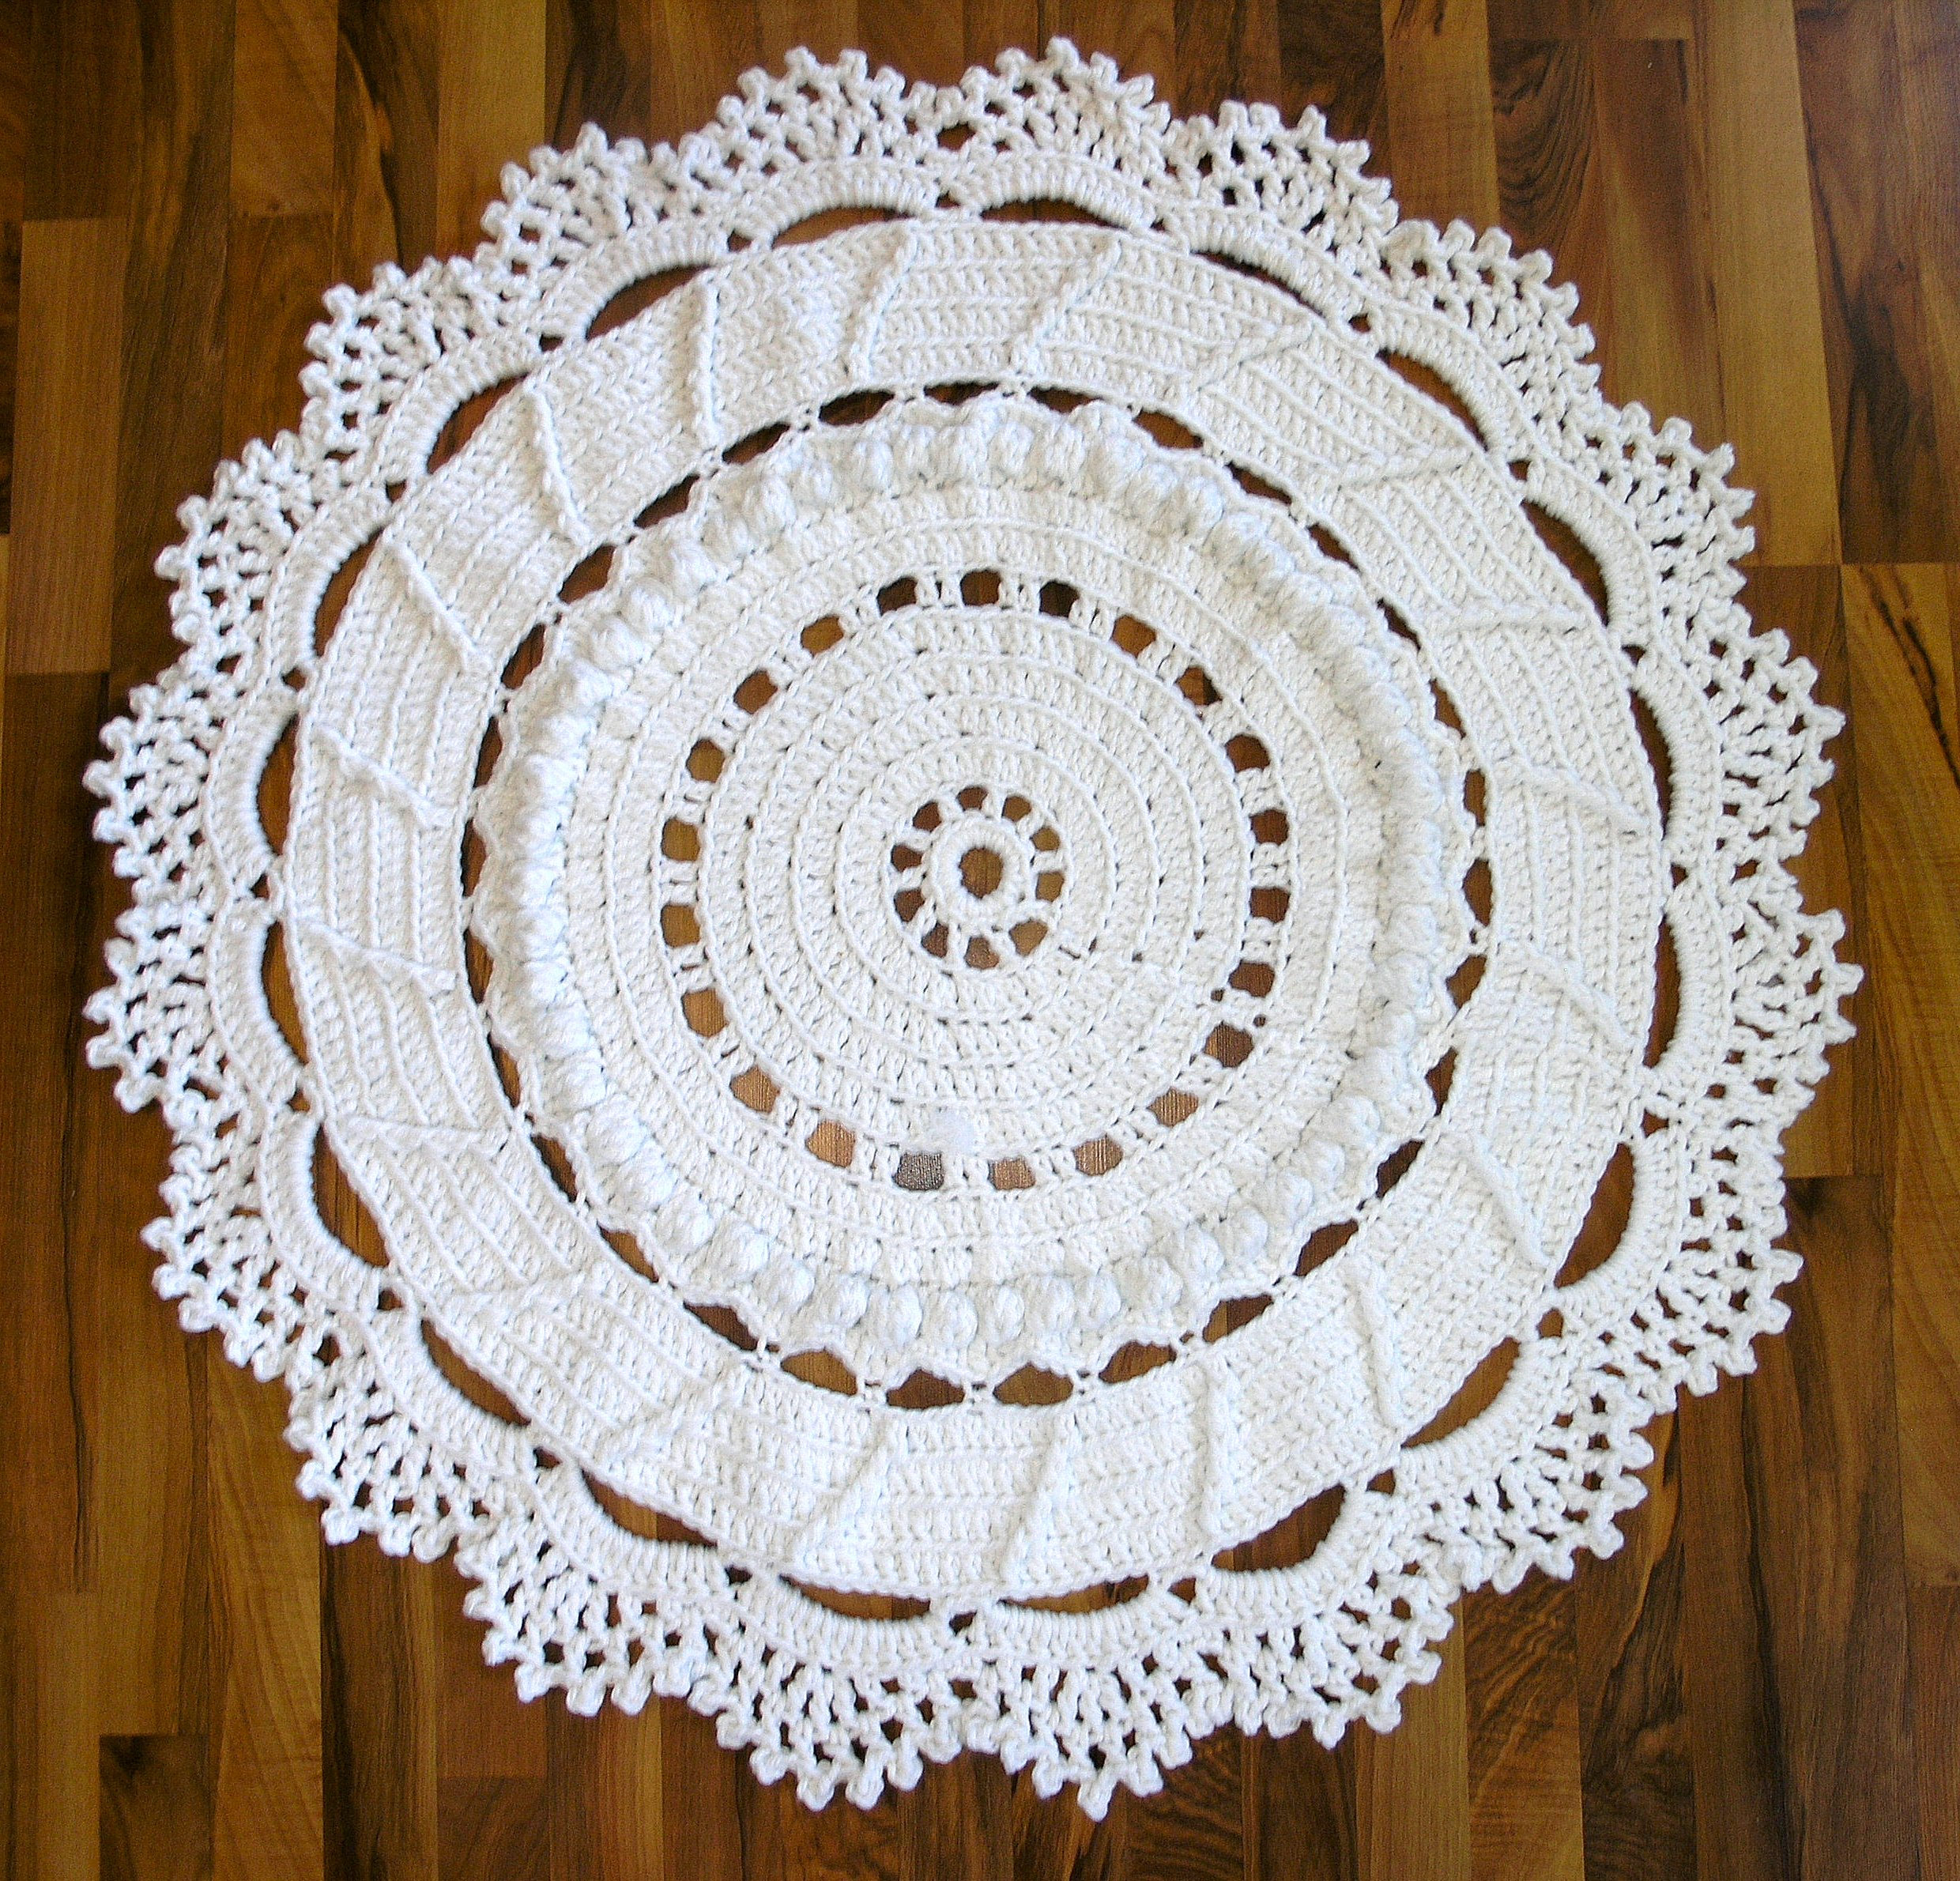 Dances With Wools Blog Archive A Giant Crochet Doily Rug For Our